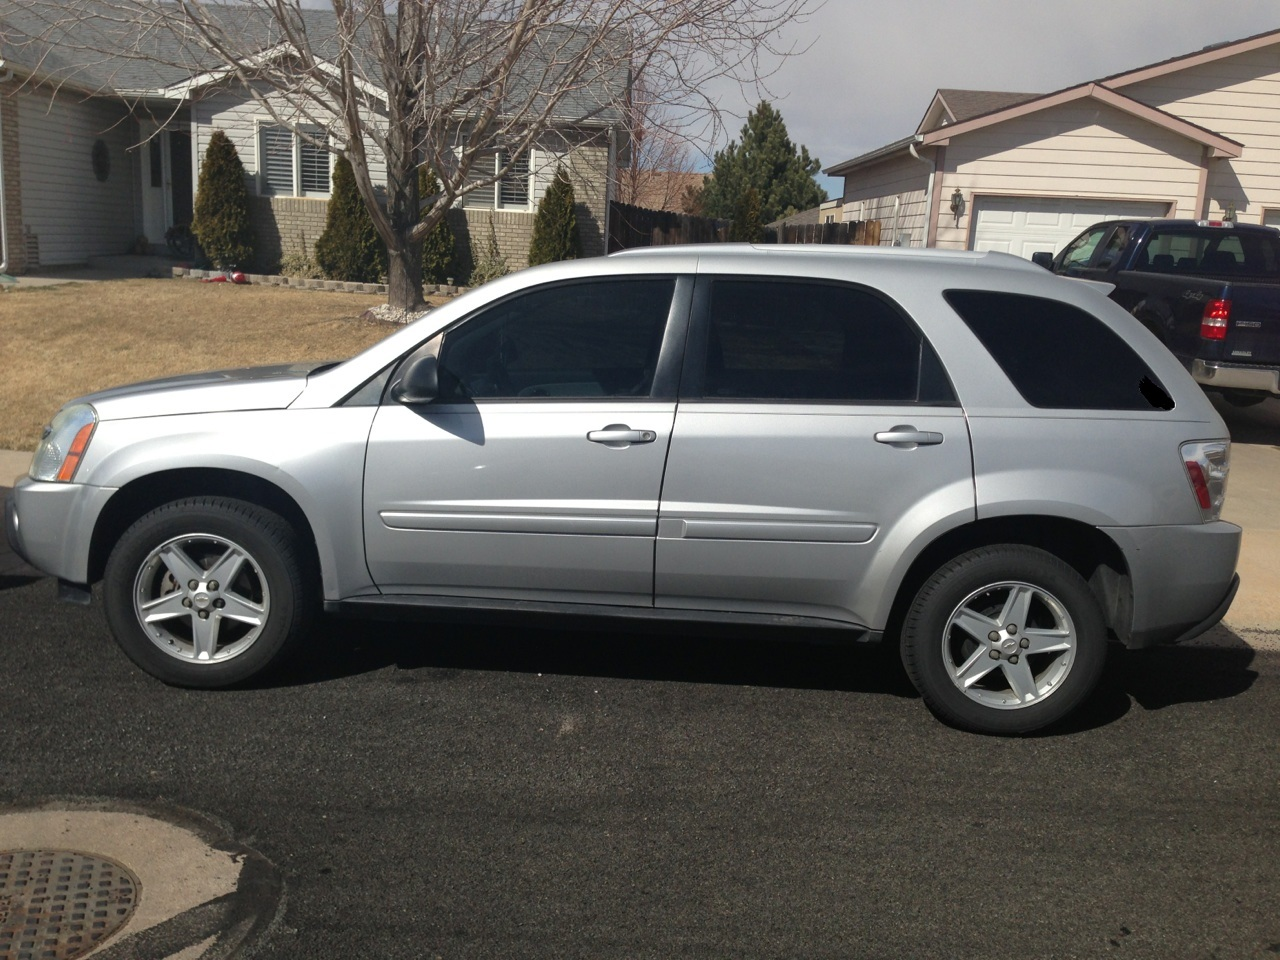 Picture of 2005 chevrolet equinox lt awd exterior